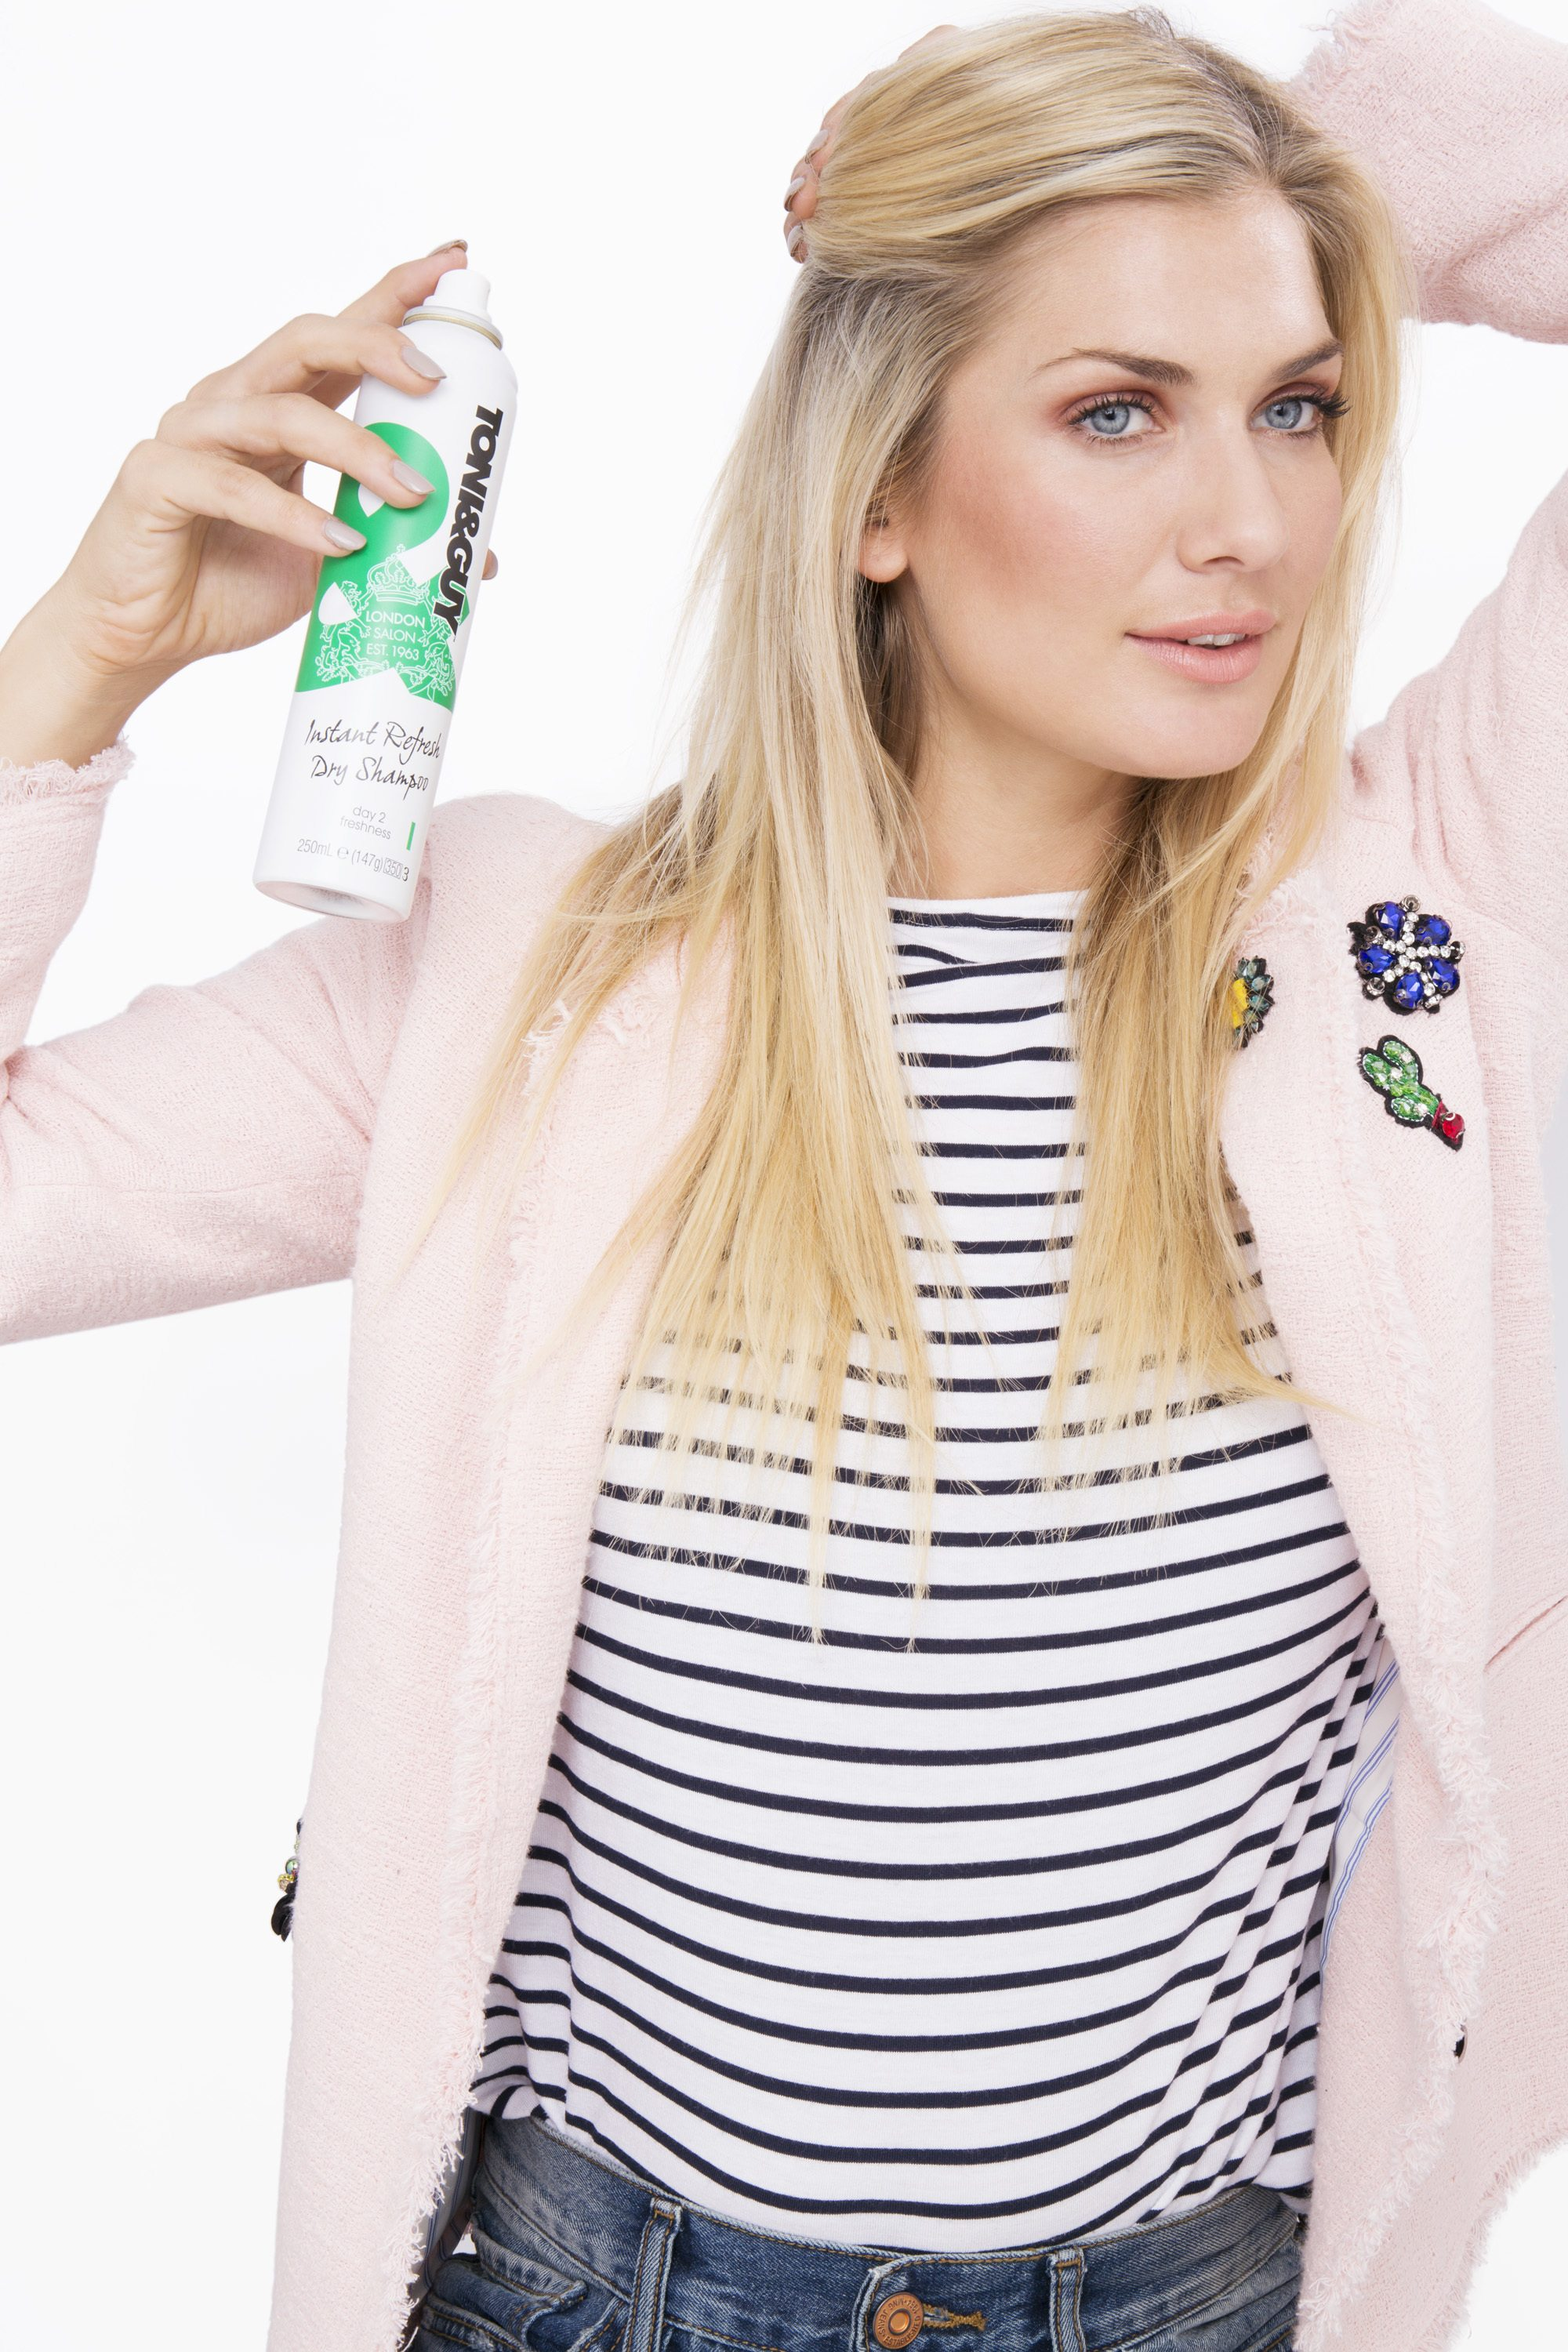 Is dry shampoo bad for your hair blonde girl spraying dry shampoo